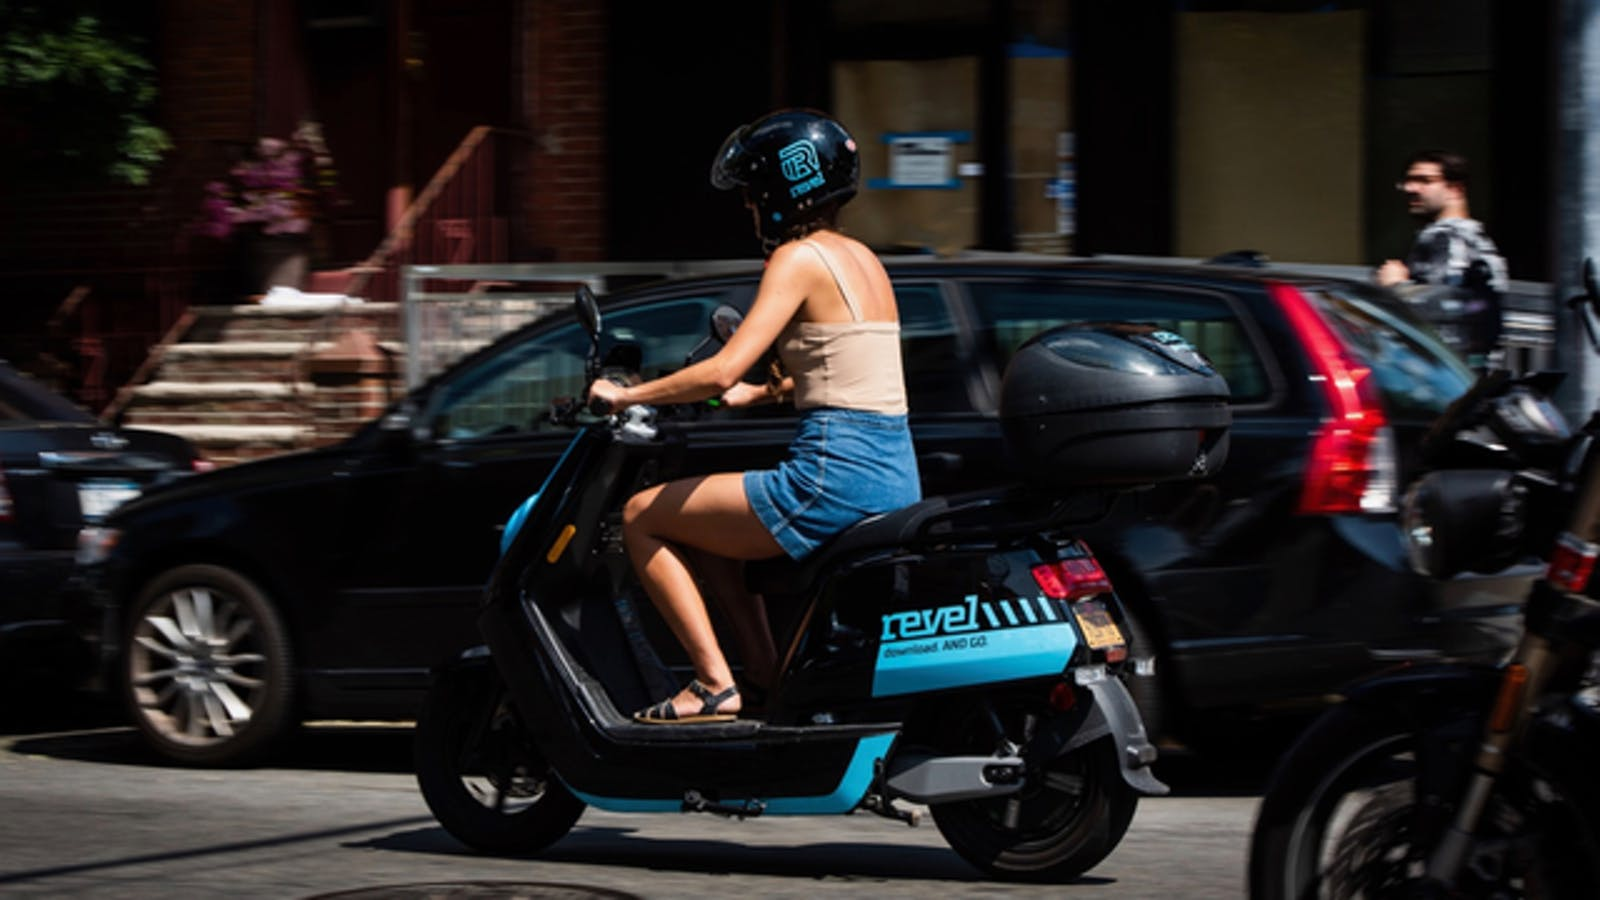 A Revel moped being ridden in Brooklyn, N.Y., last year. Photo: Bloomberg